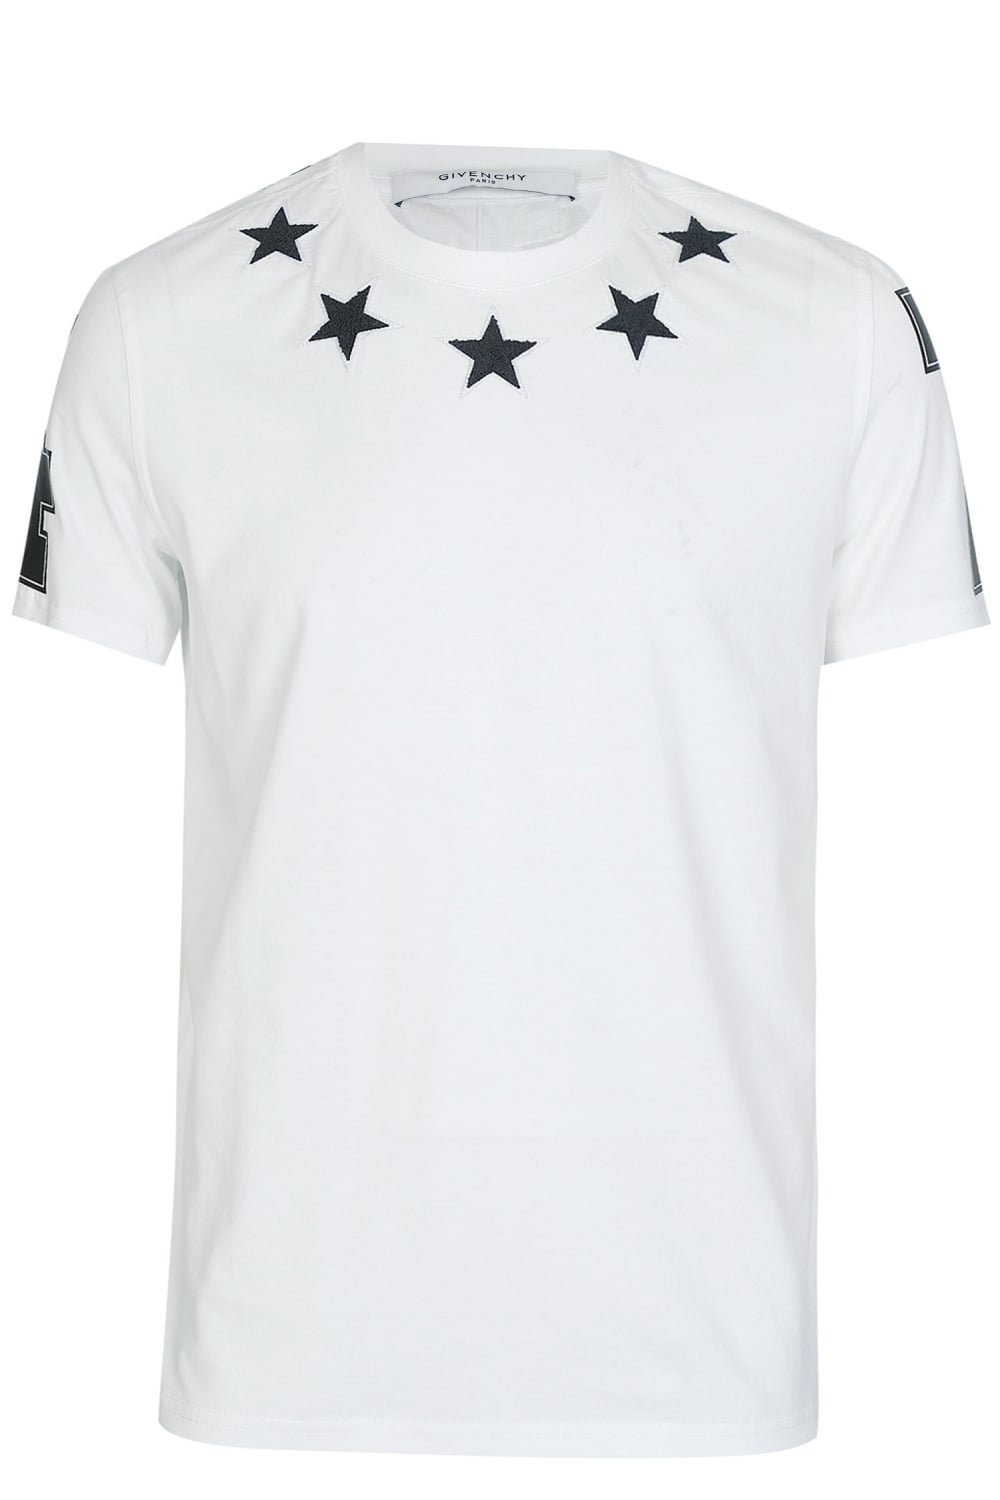 t shirt givenchy homme pas cher